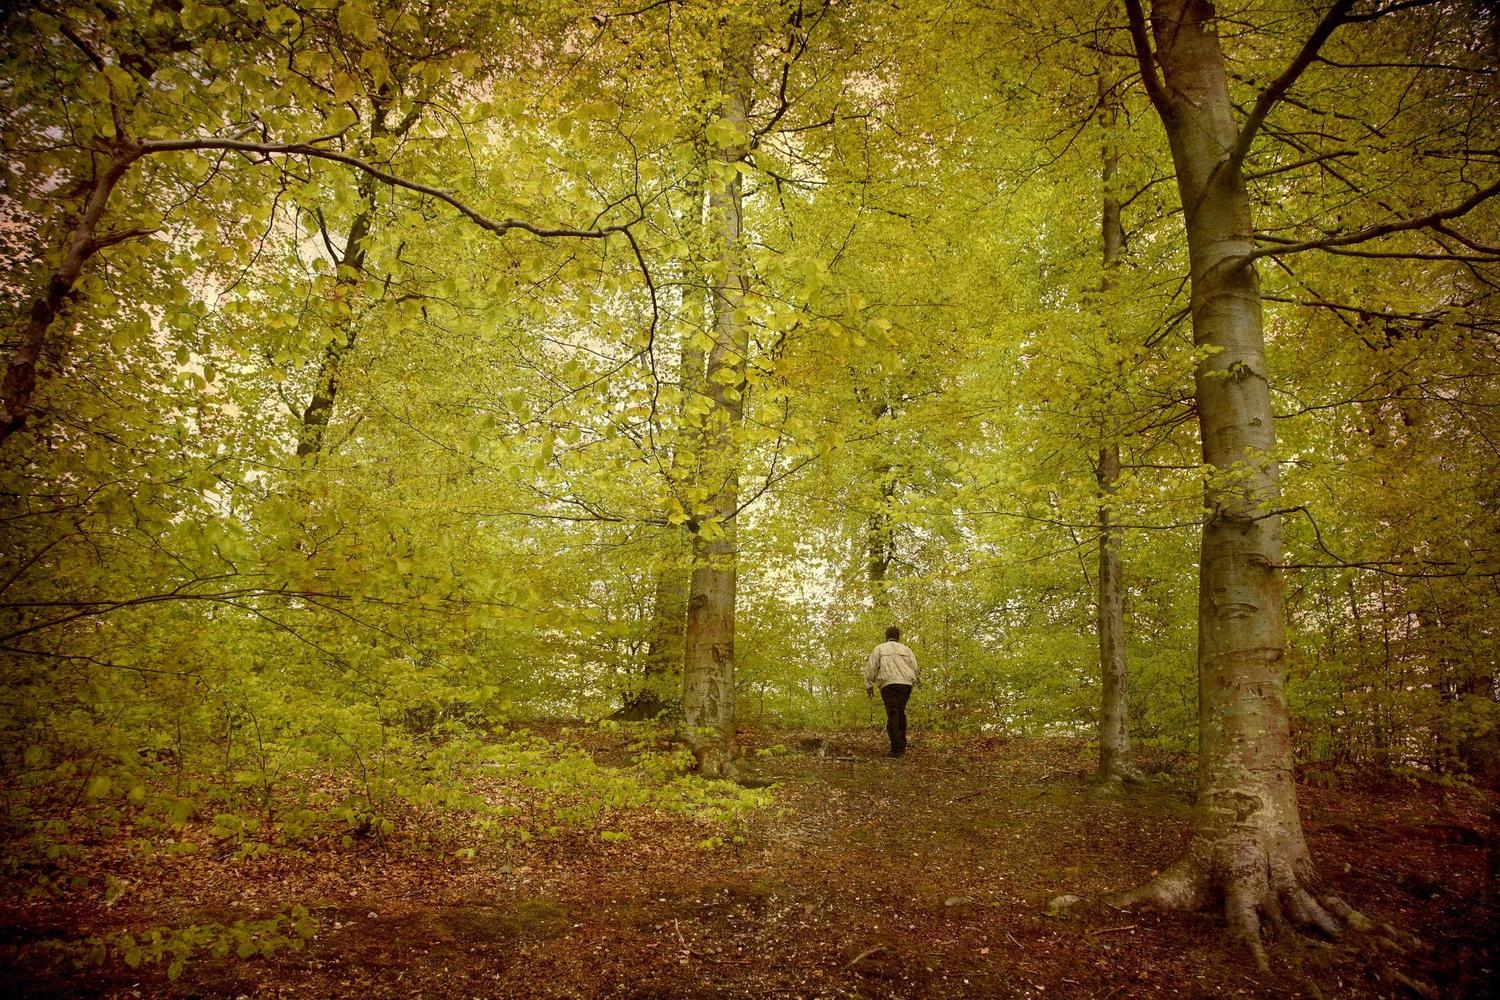 The beautiful beech forests of Northern Spain